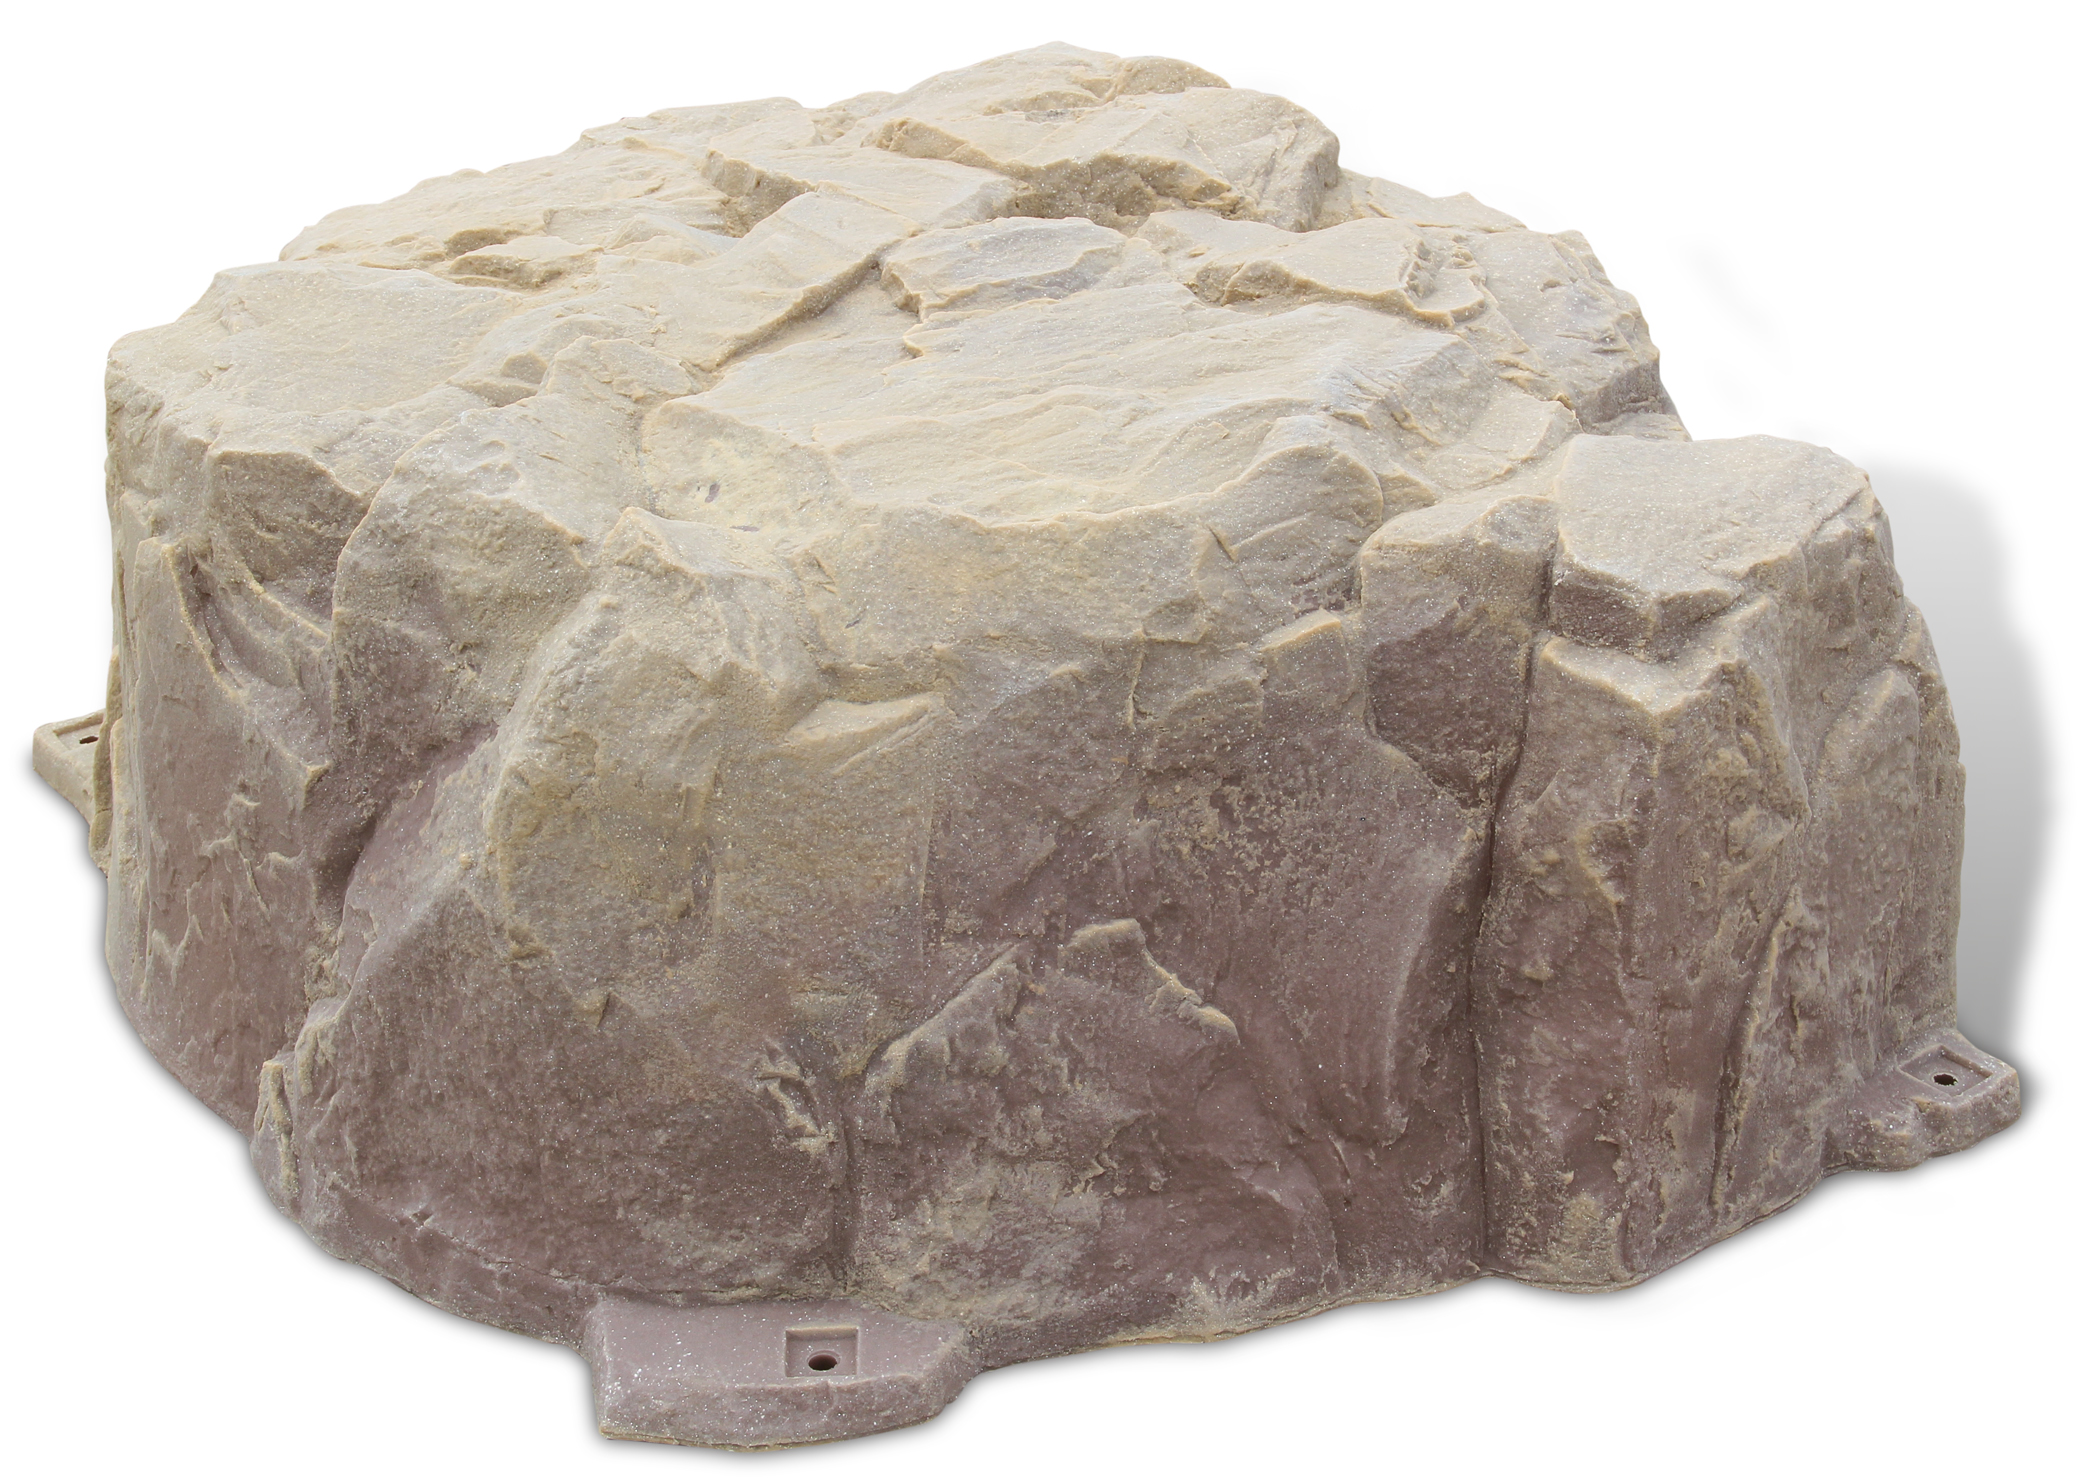 Fake Rock Septic Cover Model Sandstone Image 584